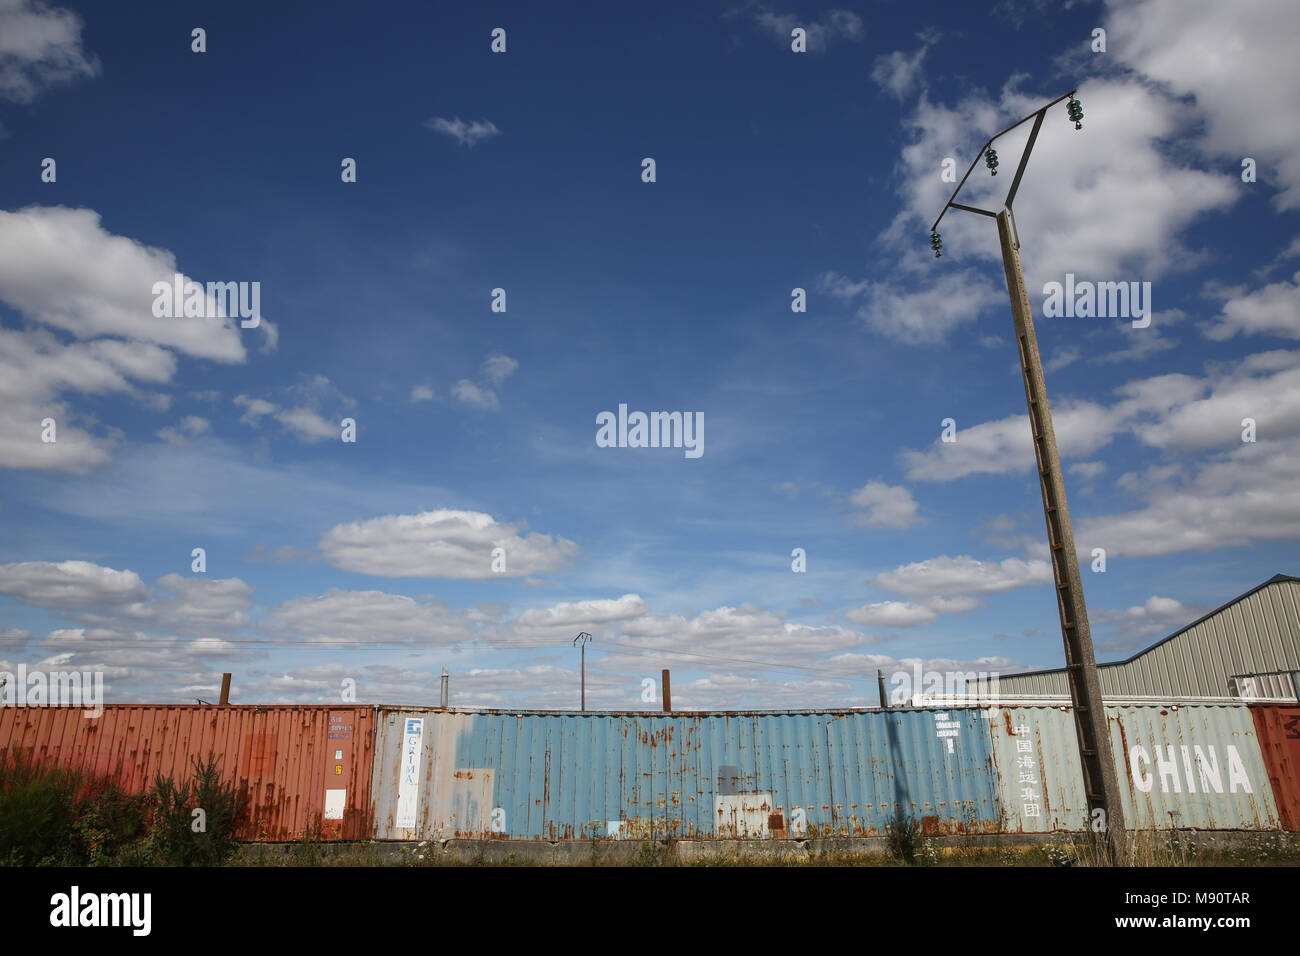 Wall made of discarded containers. Eure, France. - Stock Image